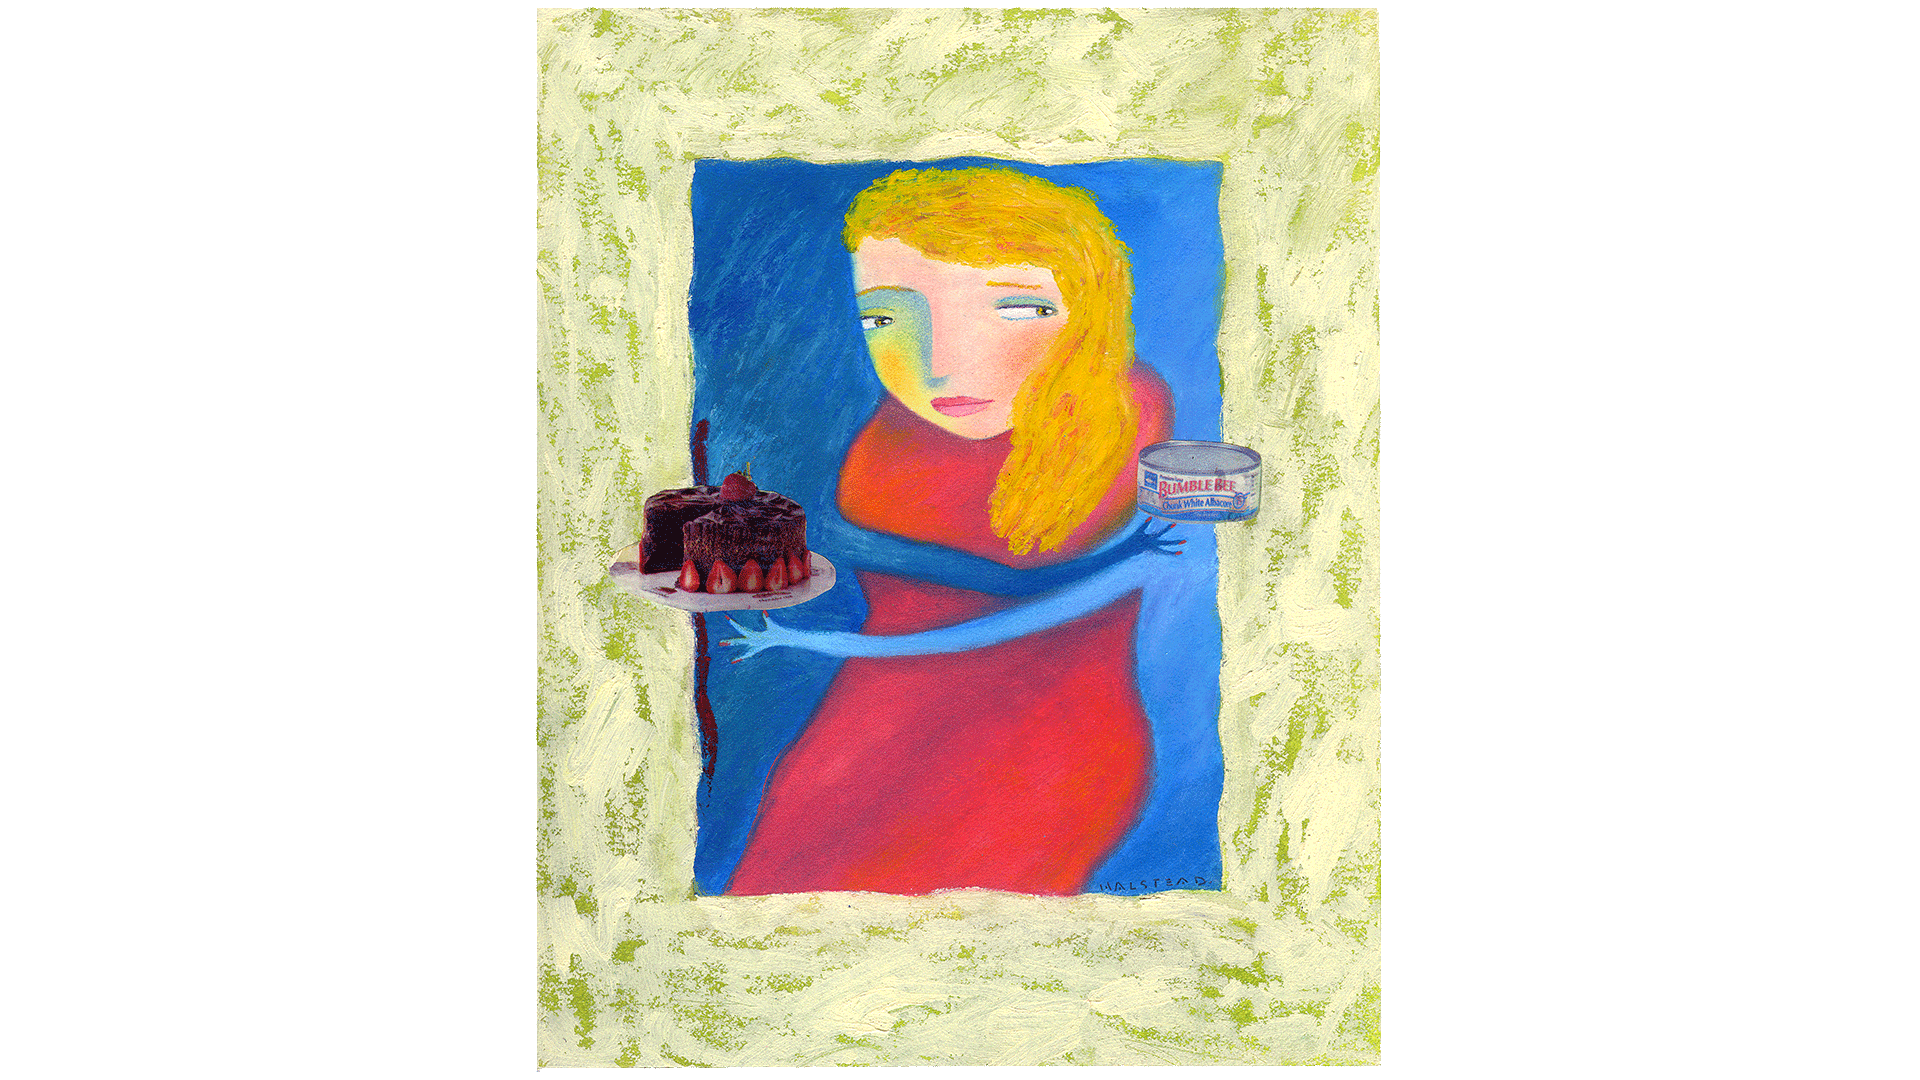 virginiahalstead.com/Paintings/Cake-or-tuna.png